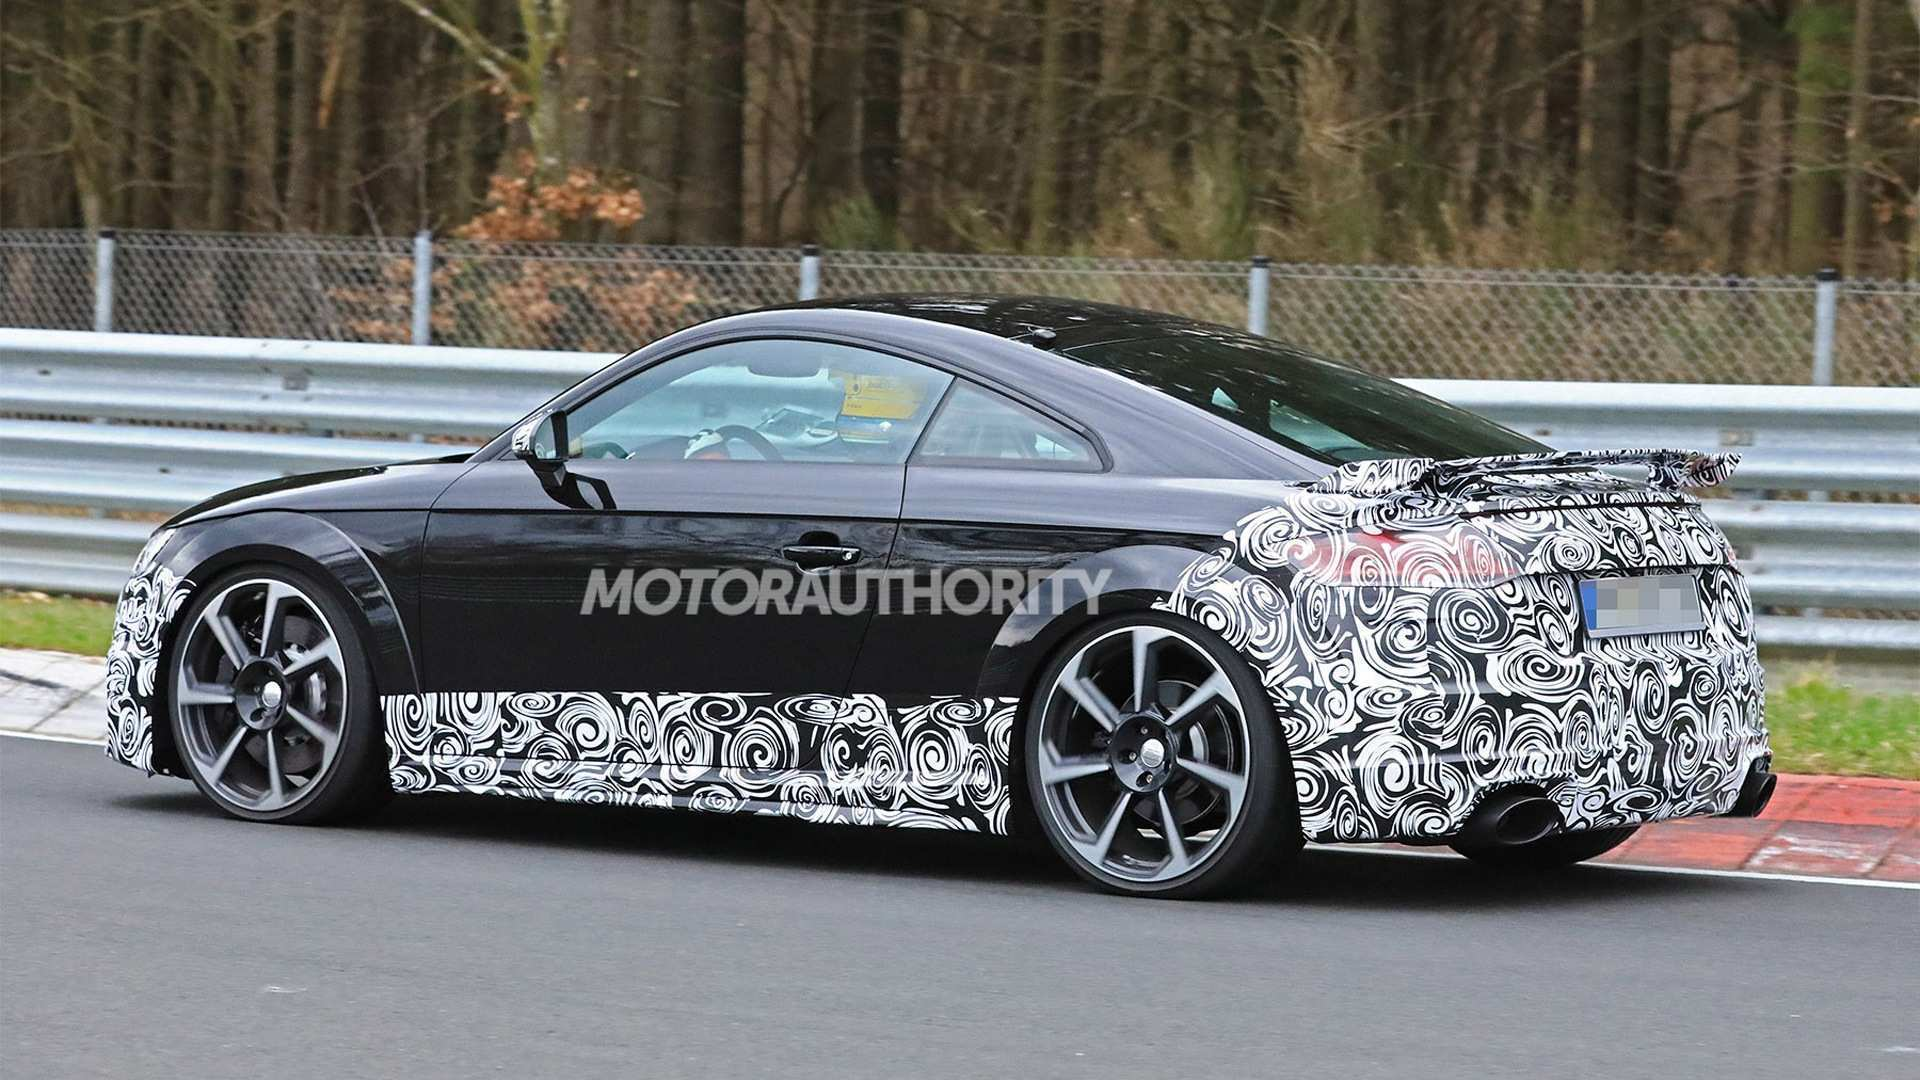 62 New 2020 Audi Tt Rs Spesification